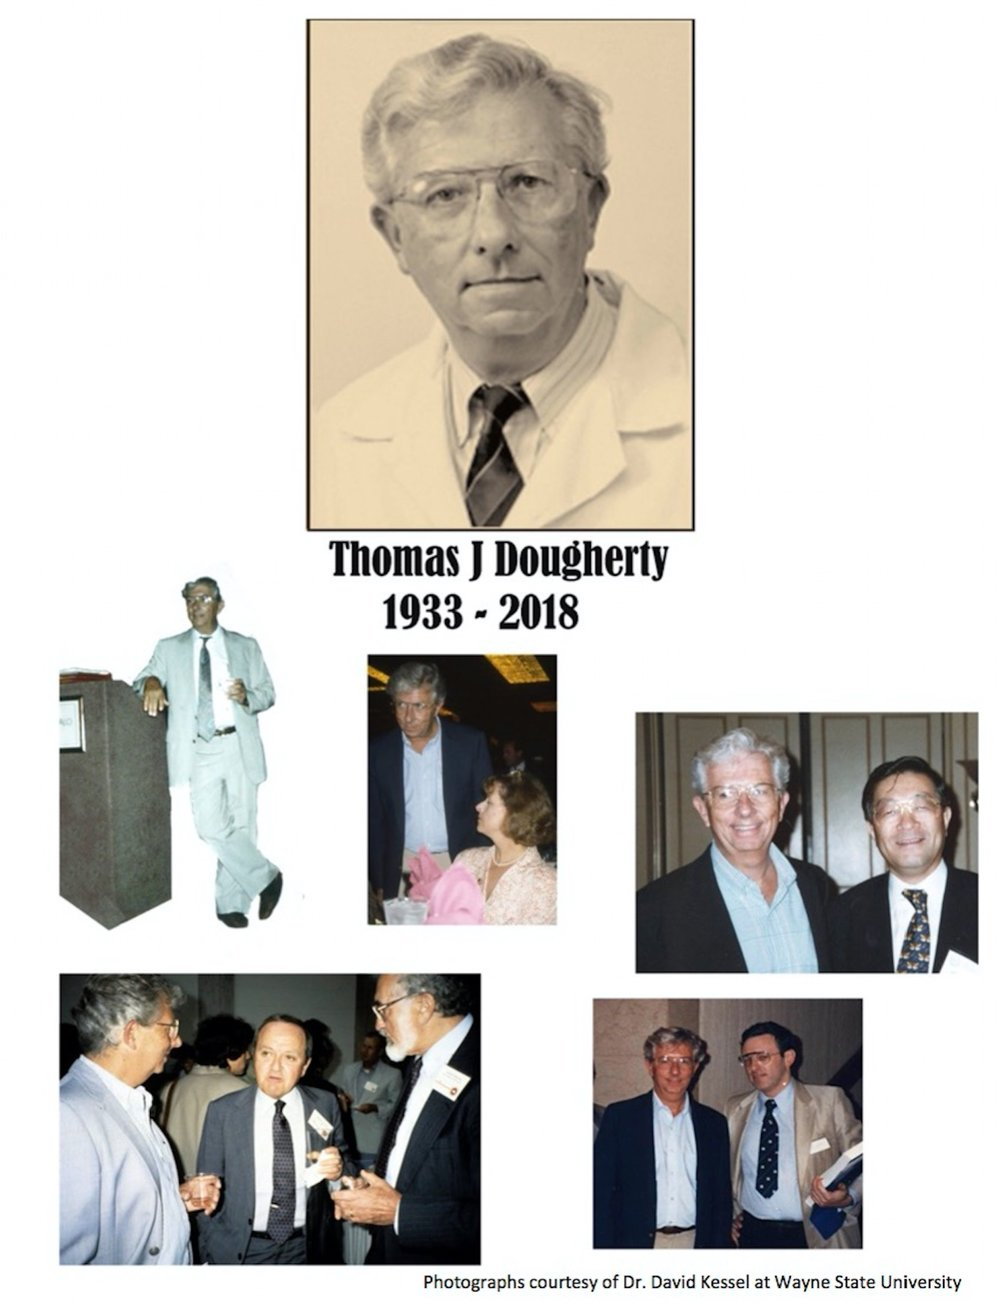 Thomas Dougherty attending various meetings and conferences over the years.